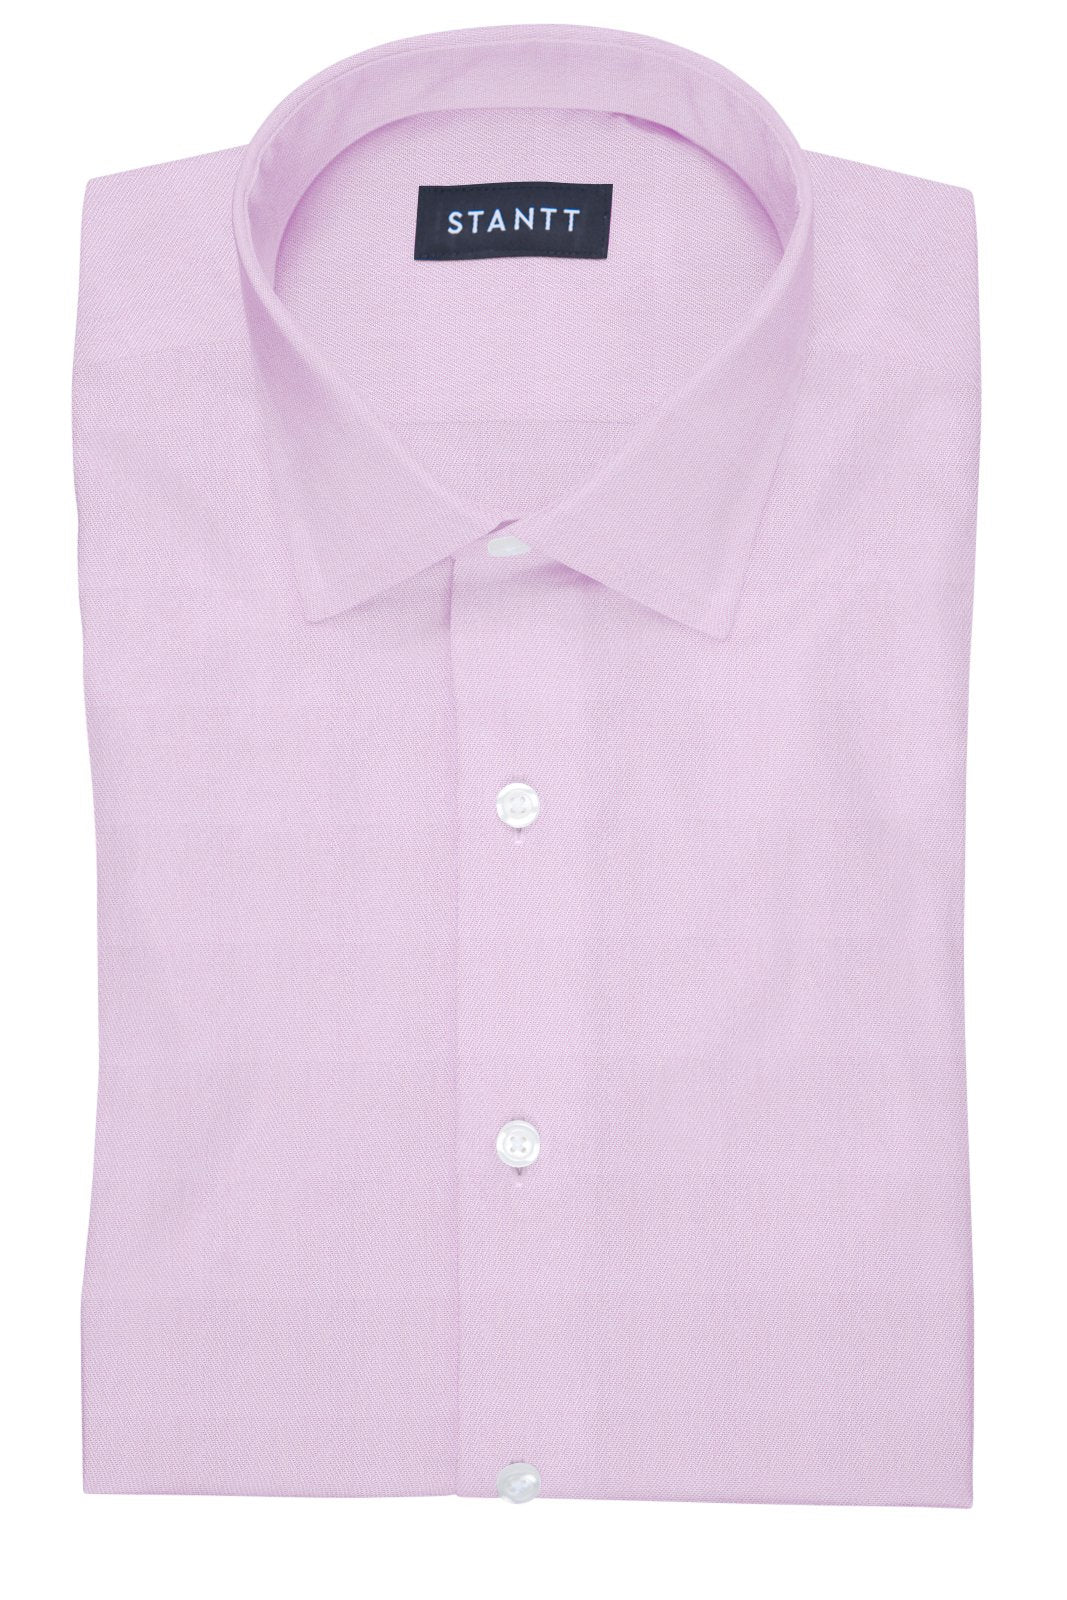 Fine Pink Twill: Modified-Spread Collar, Barrel Cuff